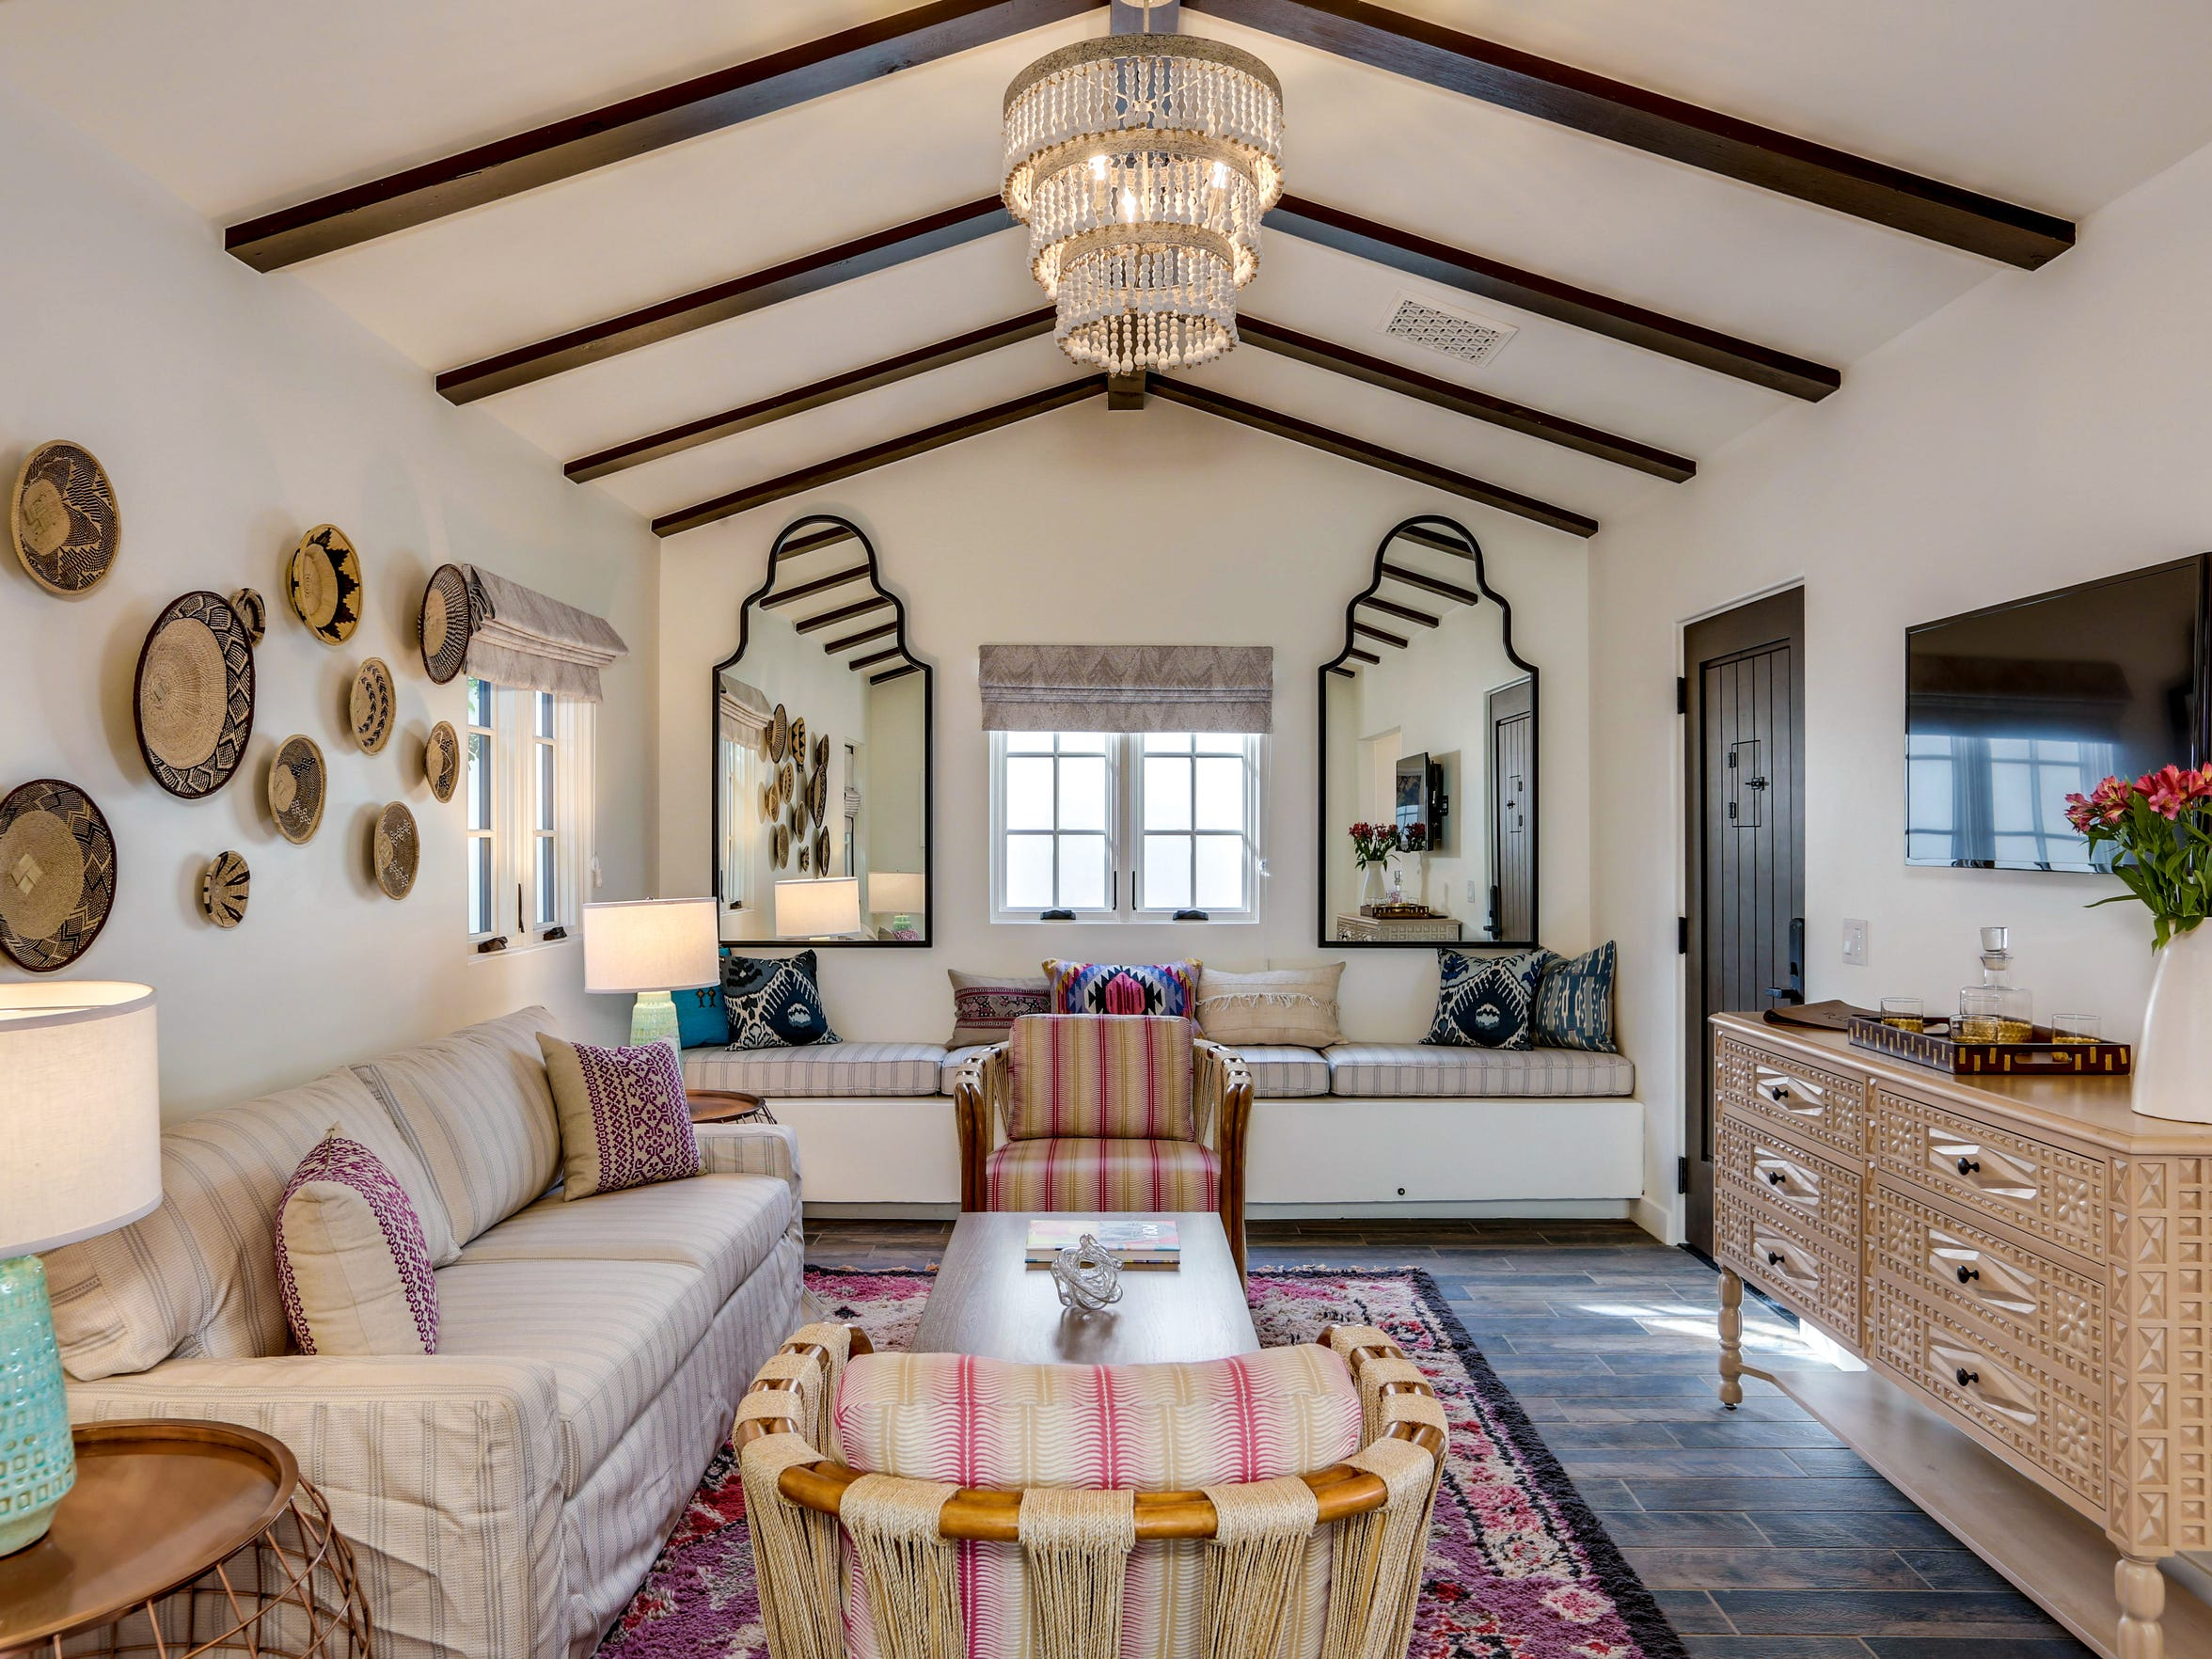 This La Serena Villas living room makes us want to play with patterns in our own homes.